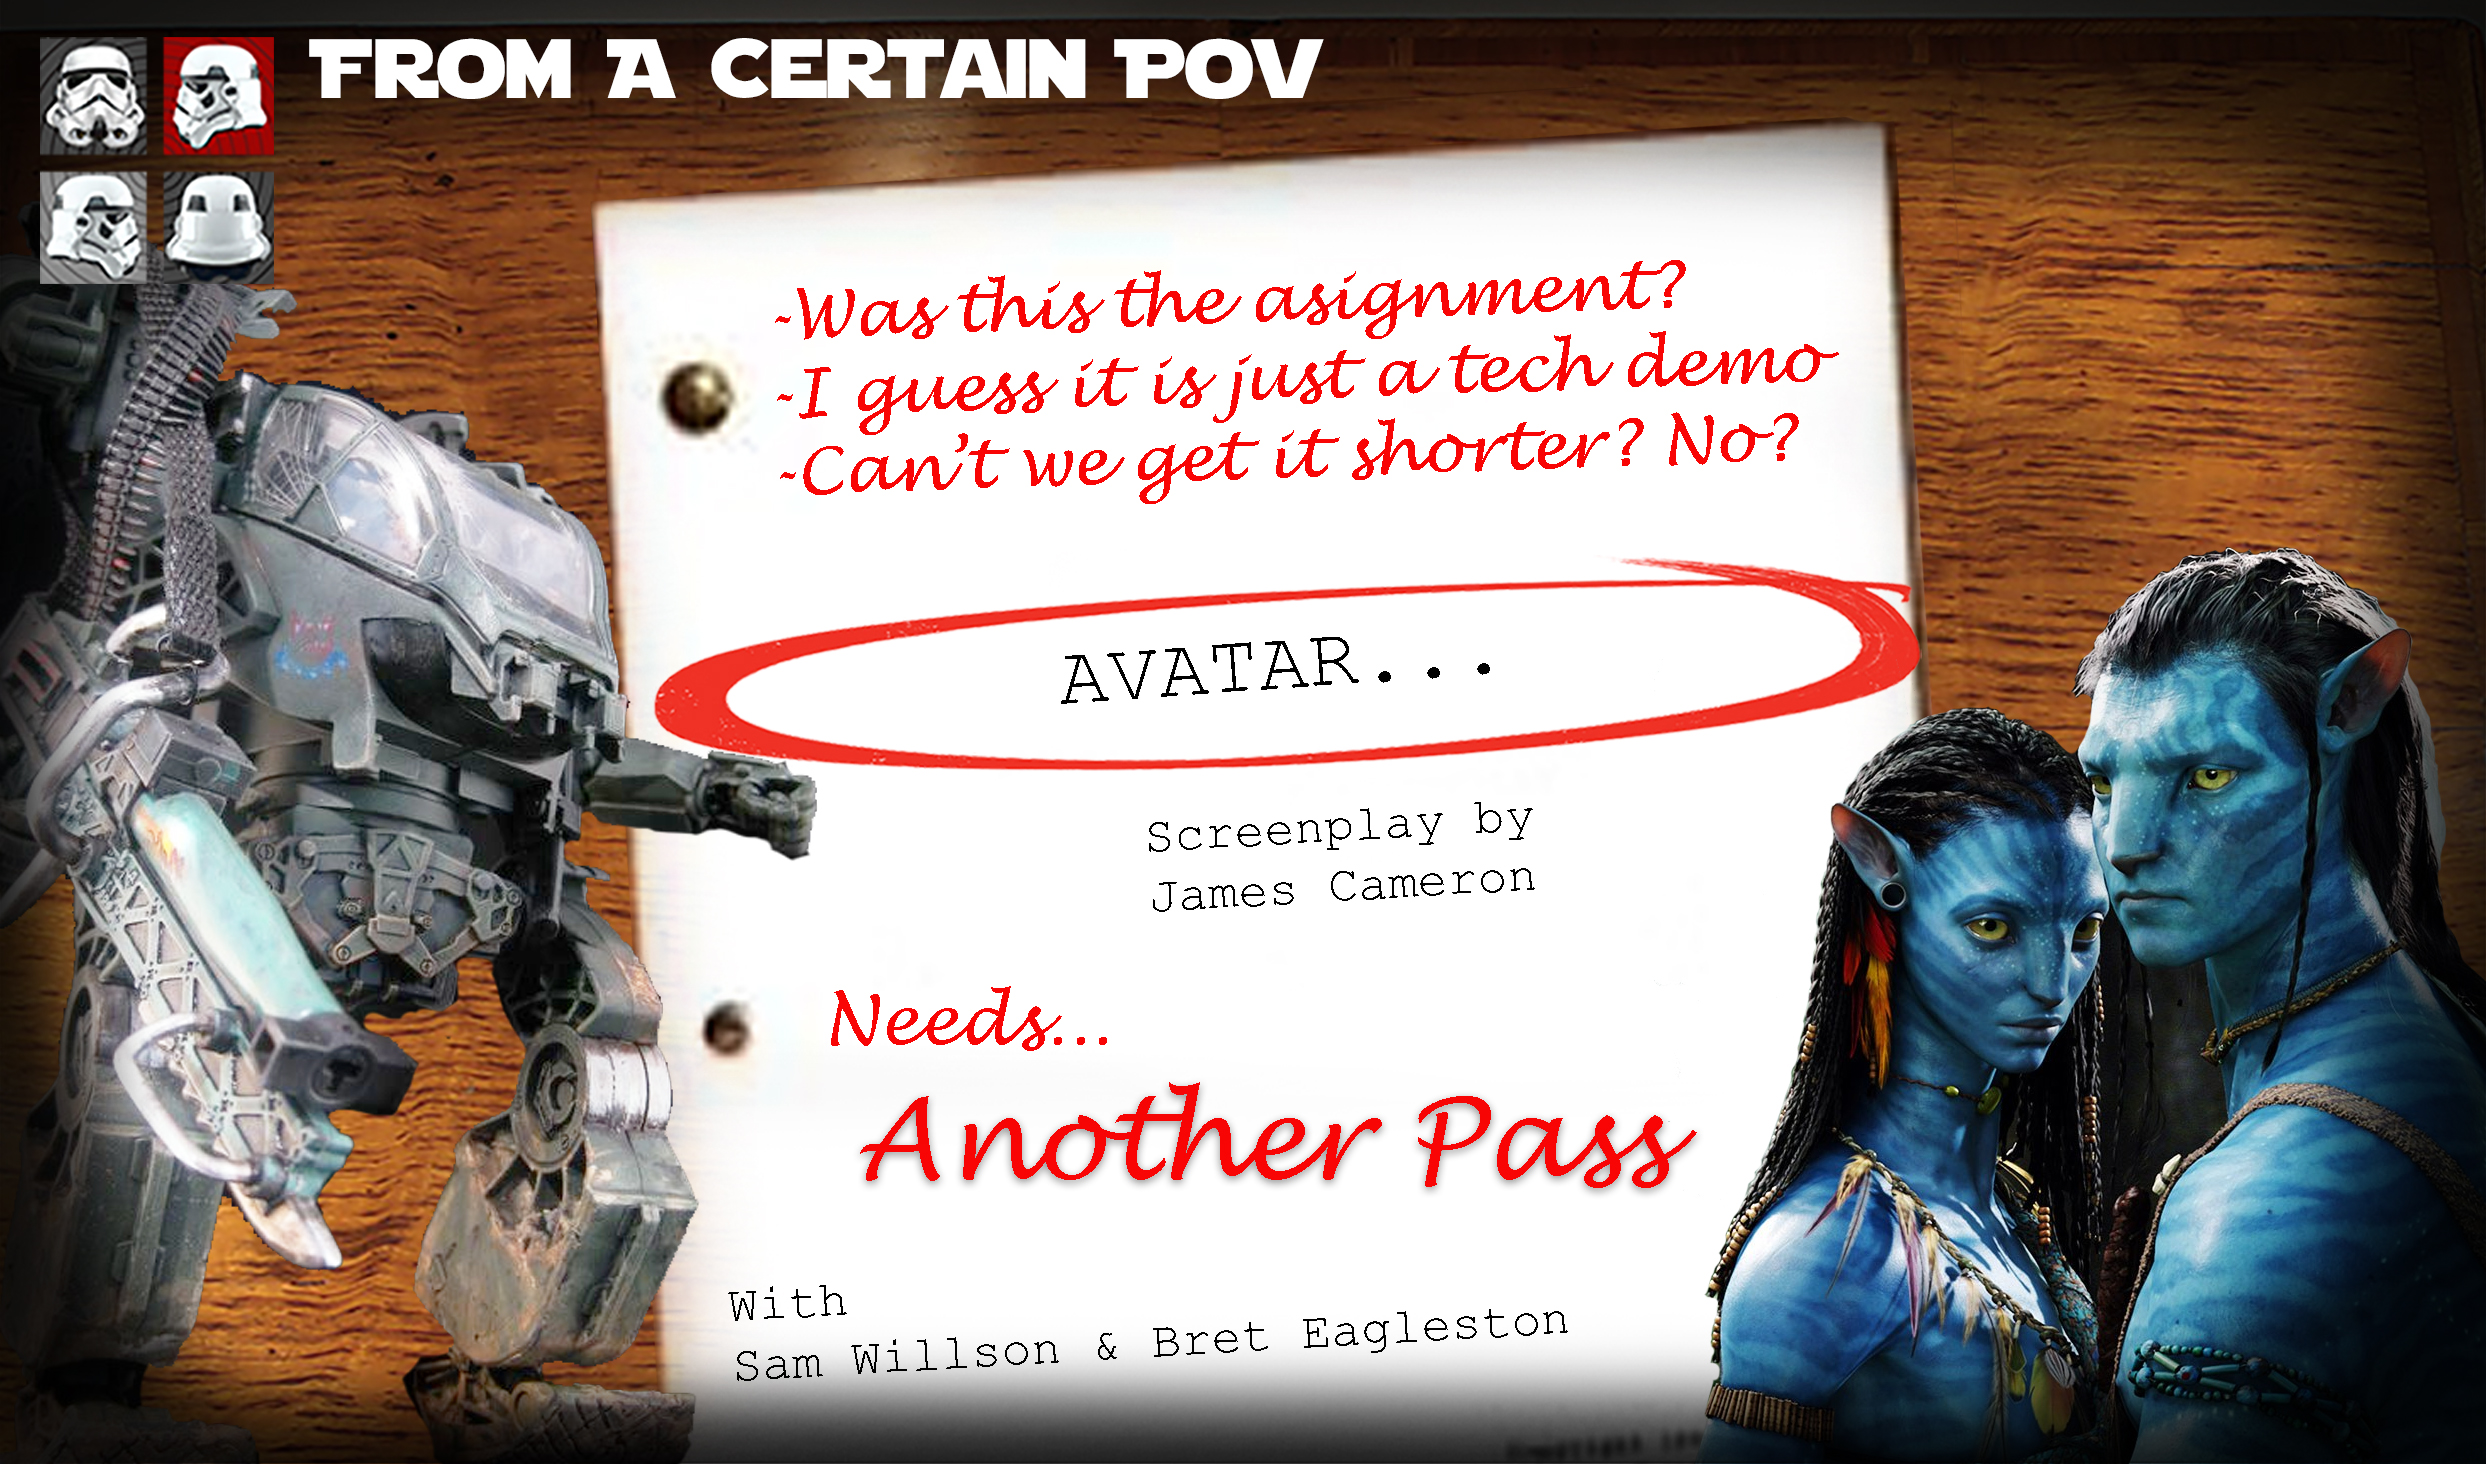 61 - Another Pass at Avatar.jpg